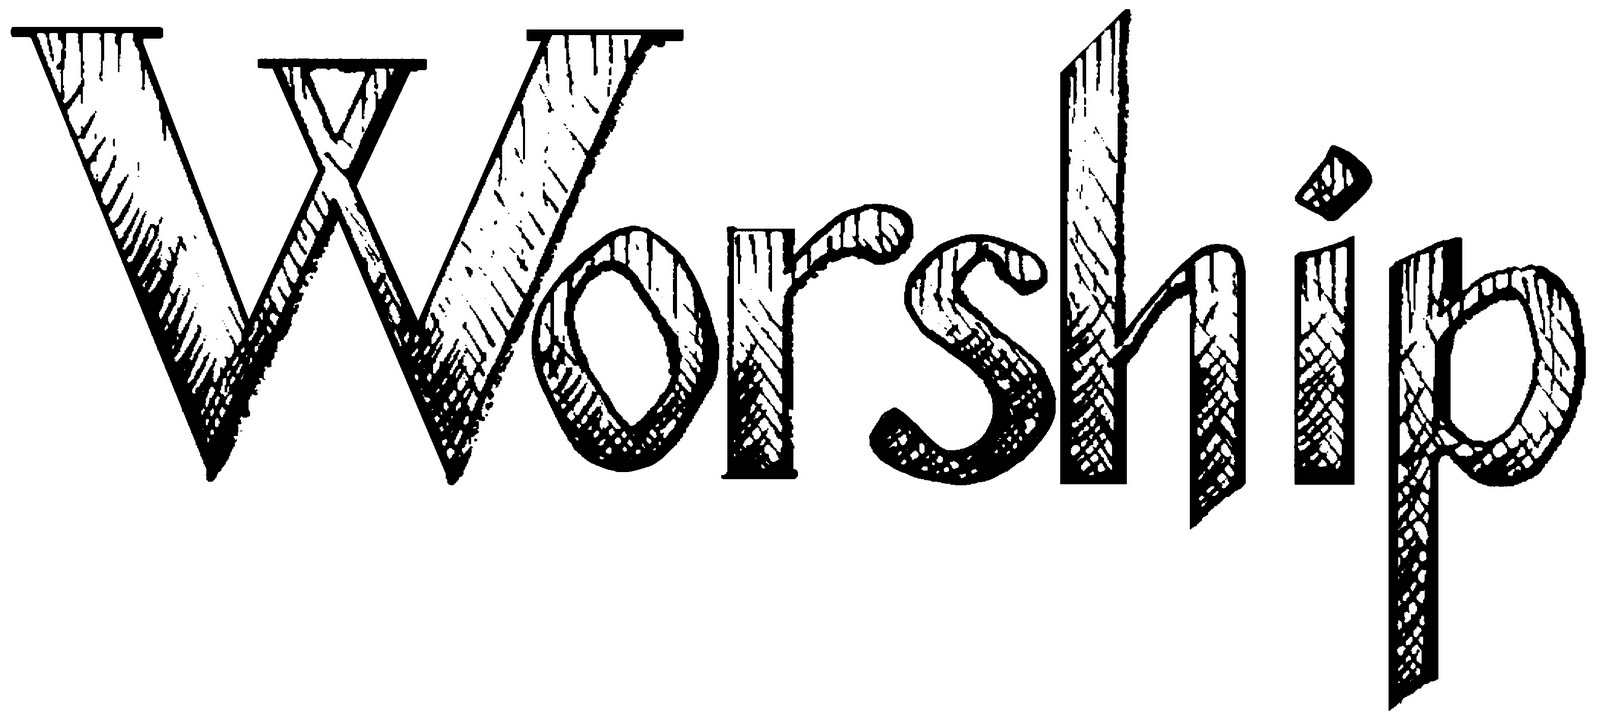 Free Worship Cliparts, Download Free Clip Art, Free Clip